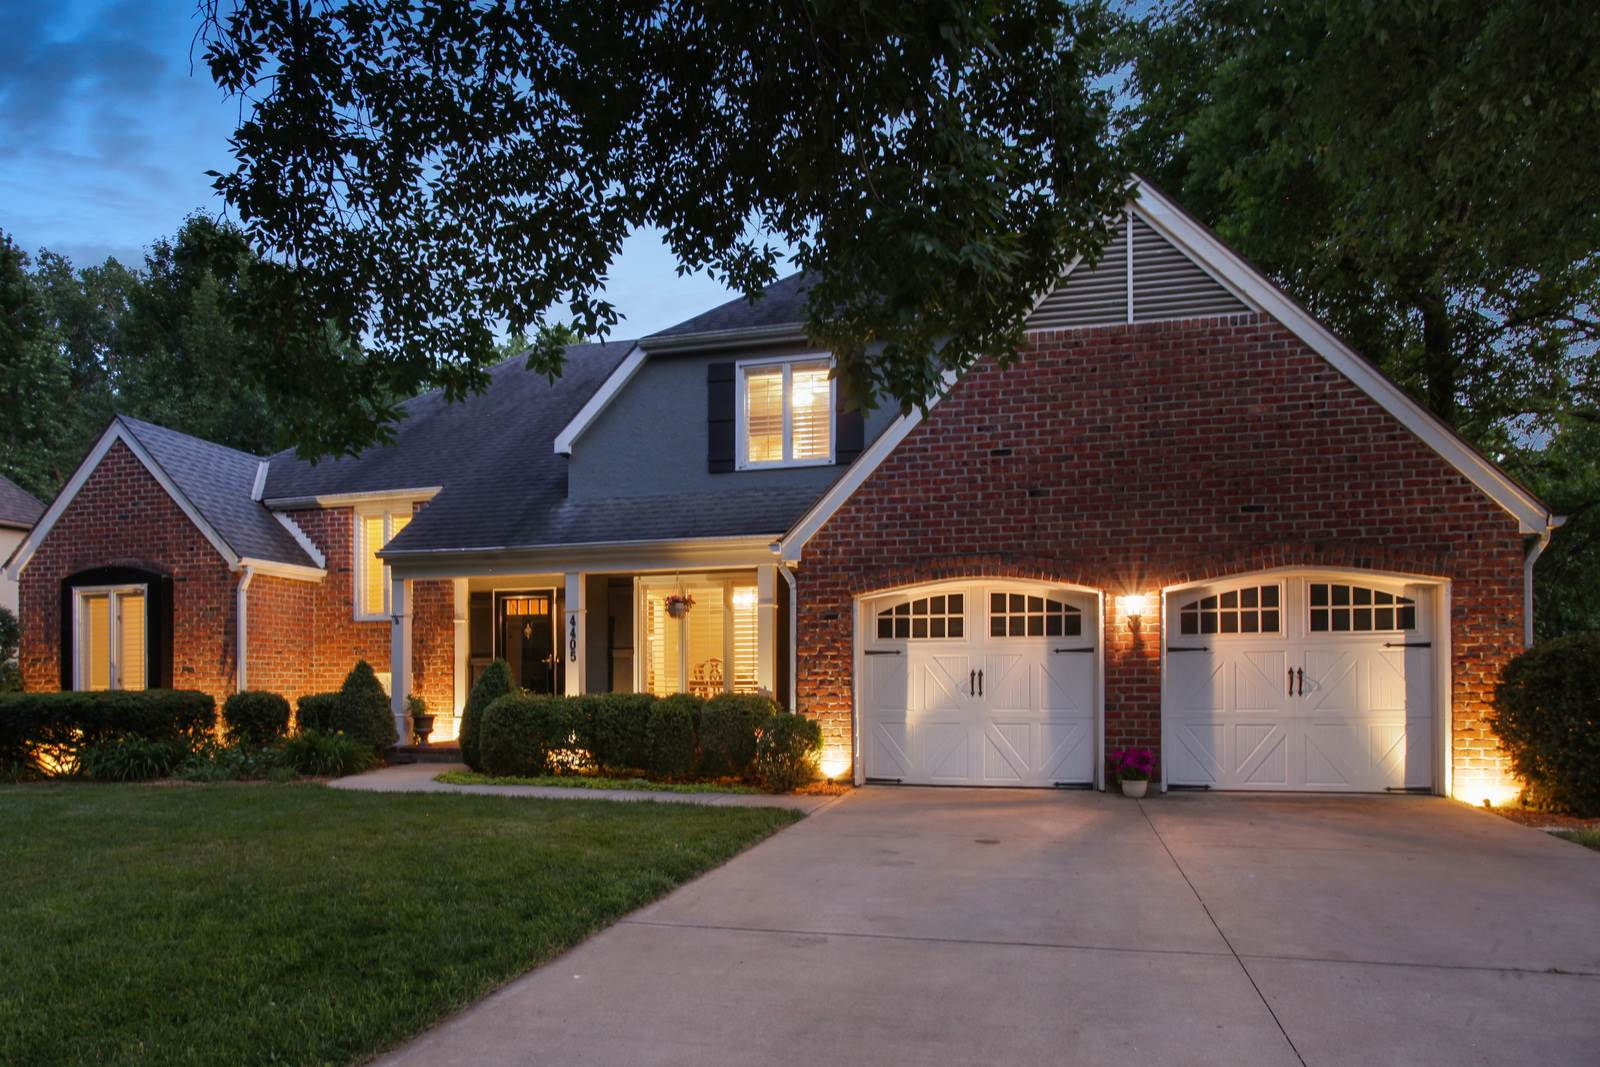 4405 W 126th Street, Leawood, KS 66209